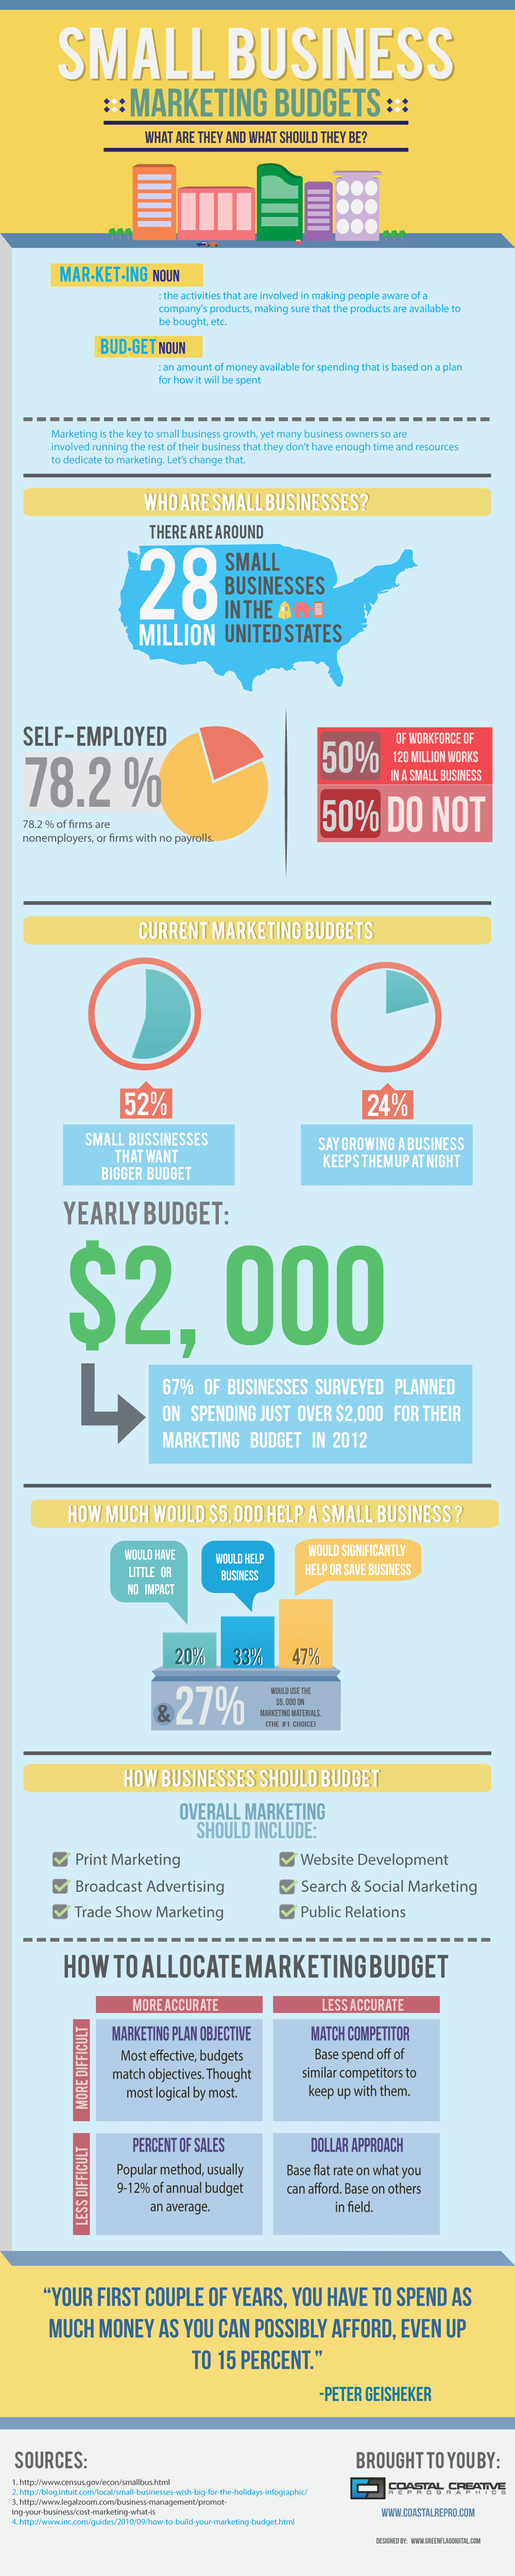 Small-Business-Marketing-Budgets-CoastalRepro-infographic